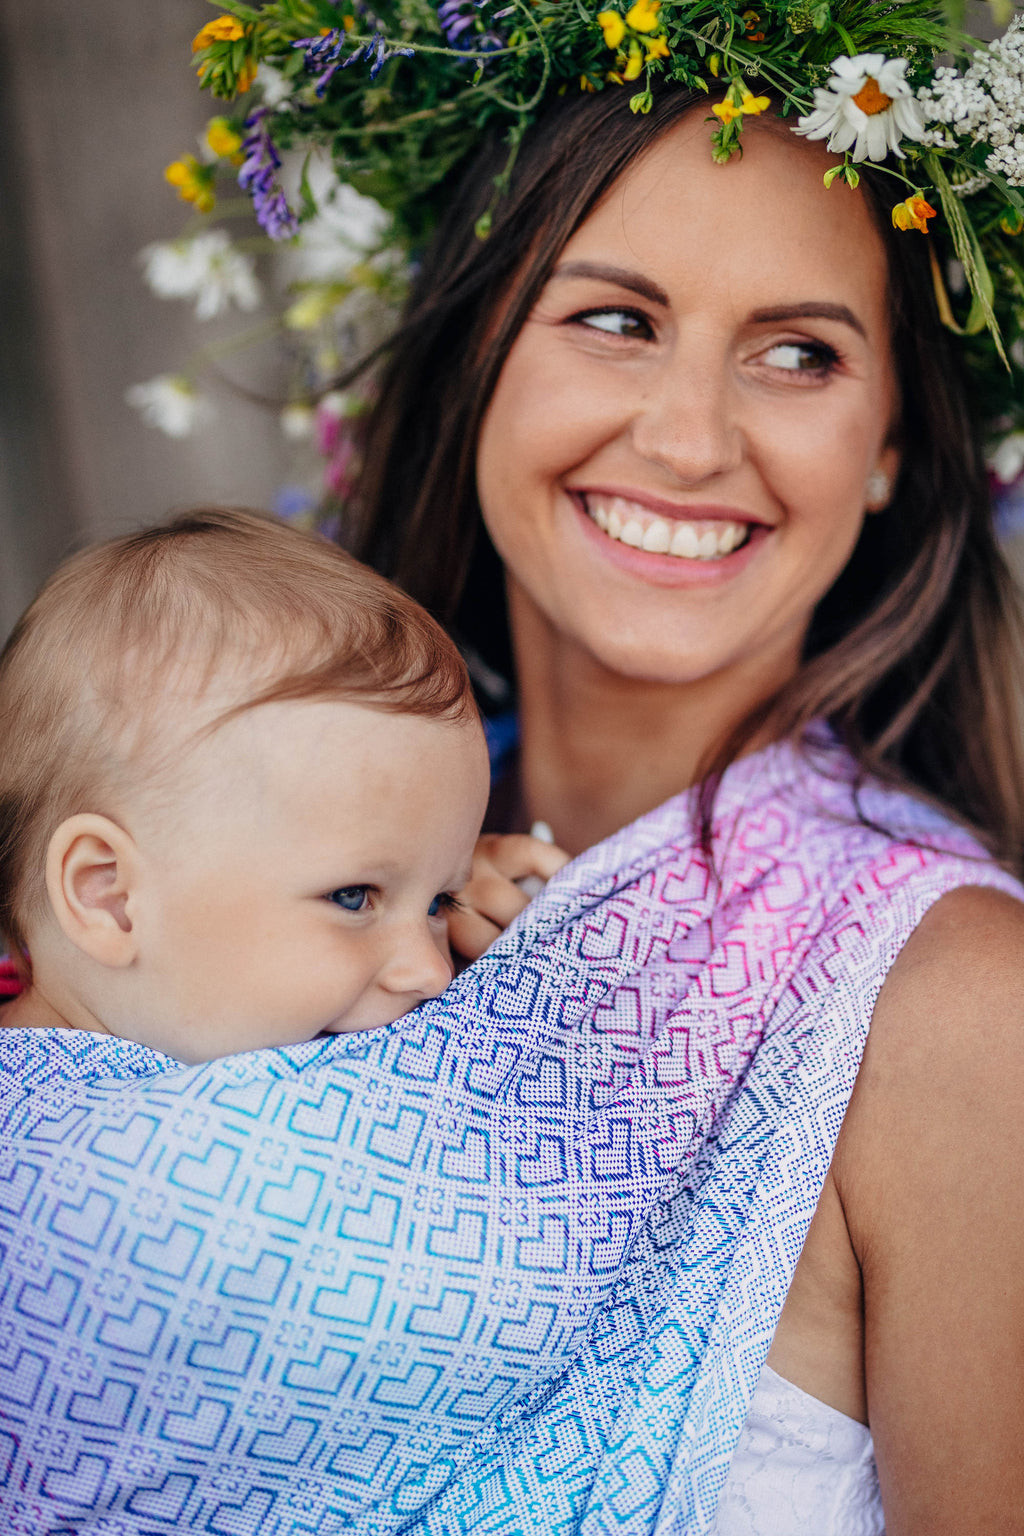 Lenny Lamb Woven Wrap - Big Love Wildflowers